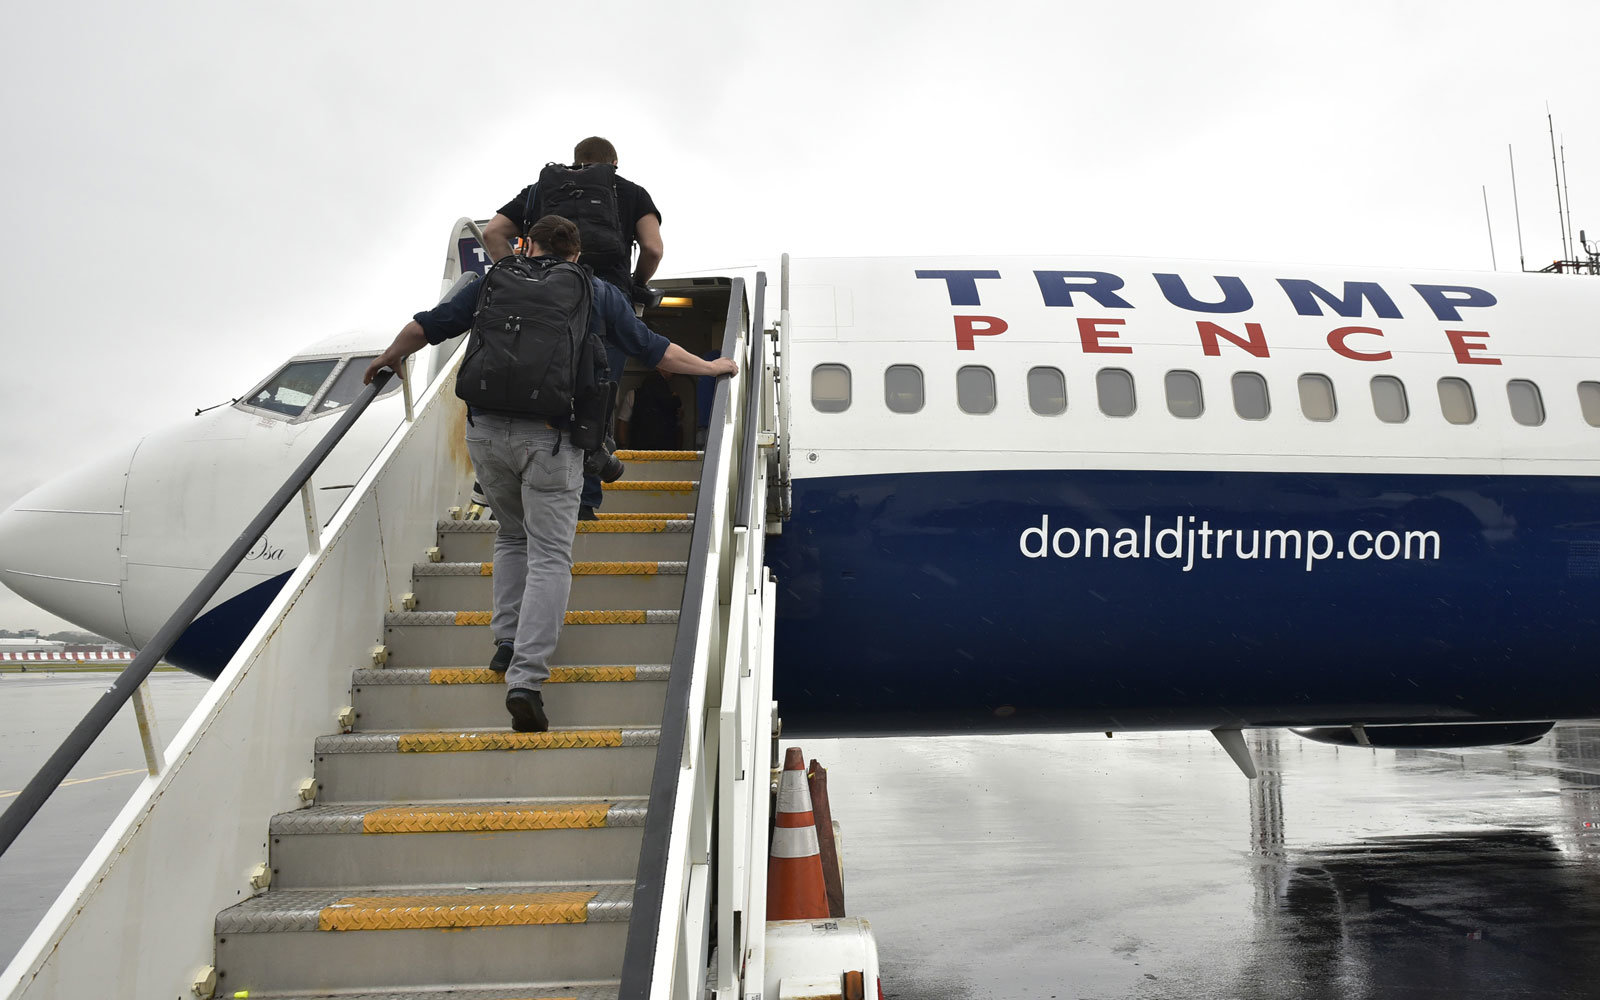 Journalists board the new Trump press plane for the first time at LaGuardia airport on Sept. 19, 2016 in New York.